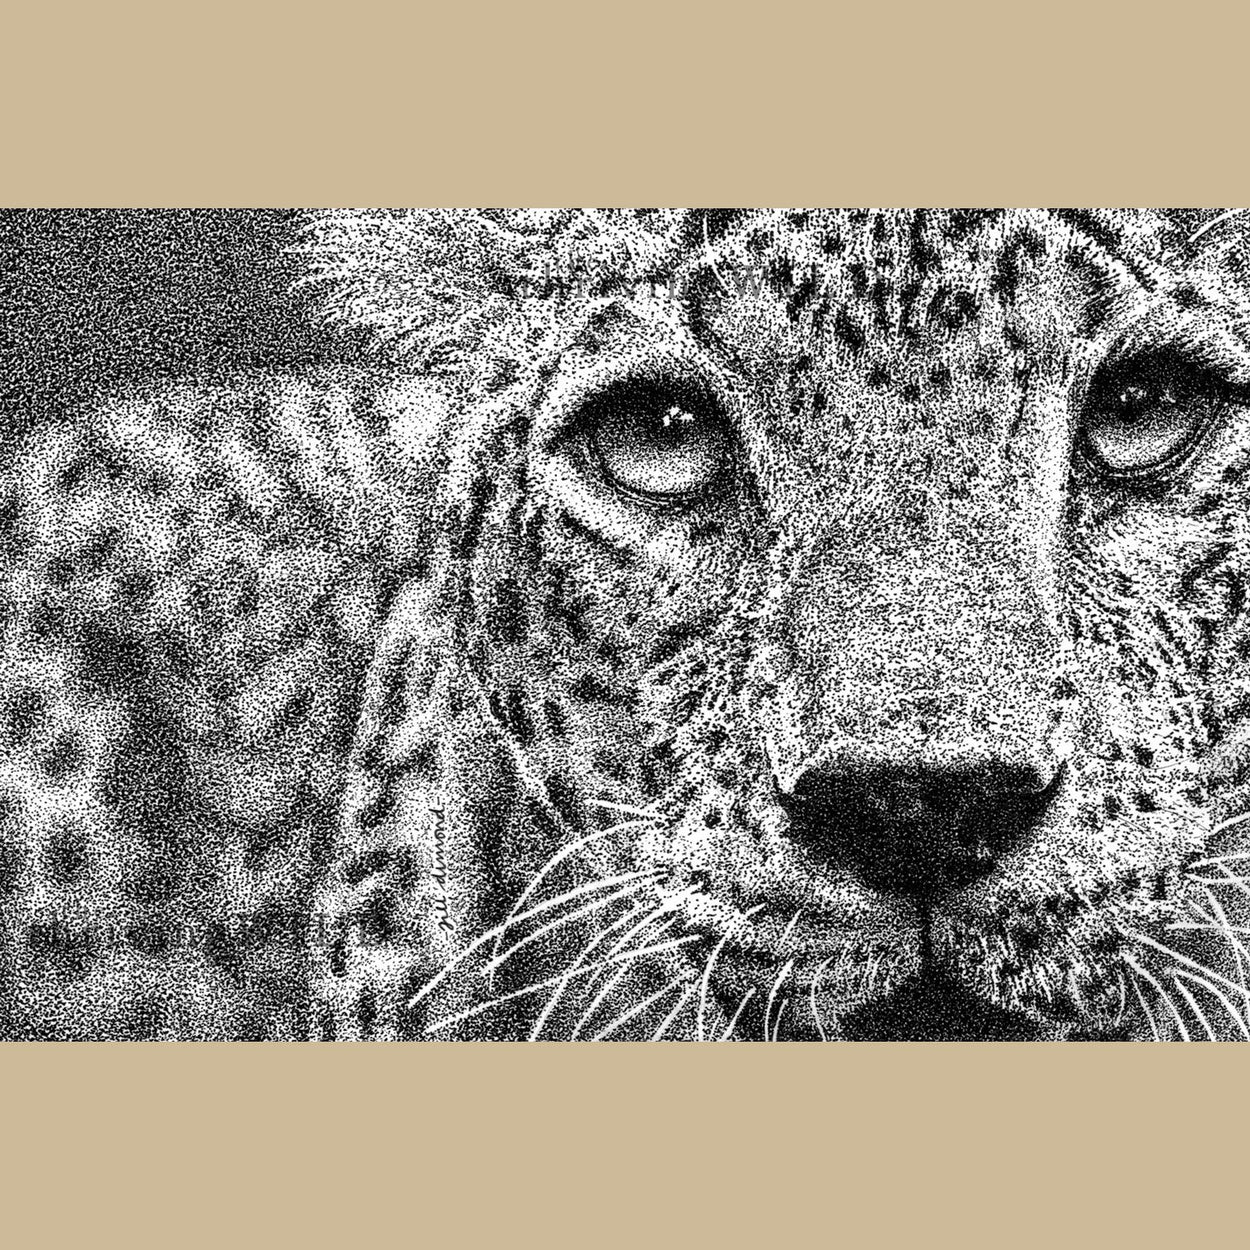 Leopard Pen Drawing Stippling - The Thriving Wild